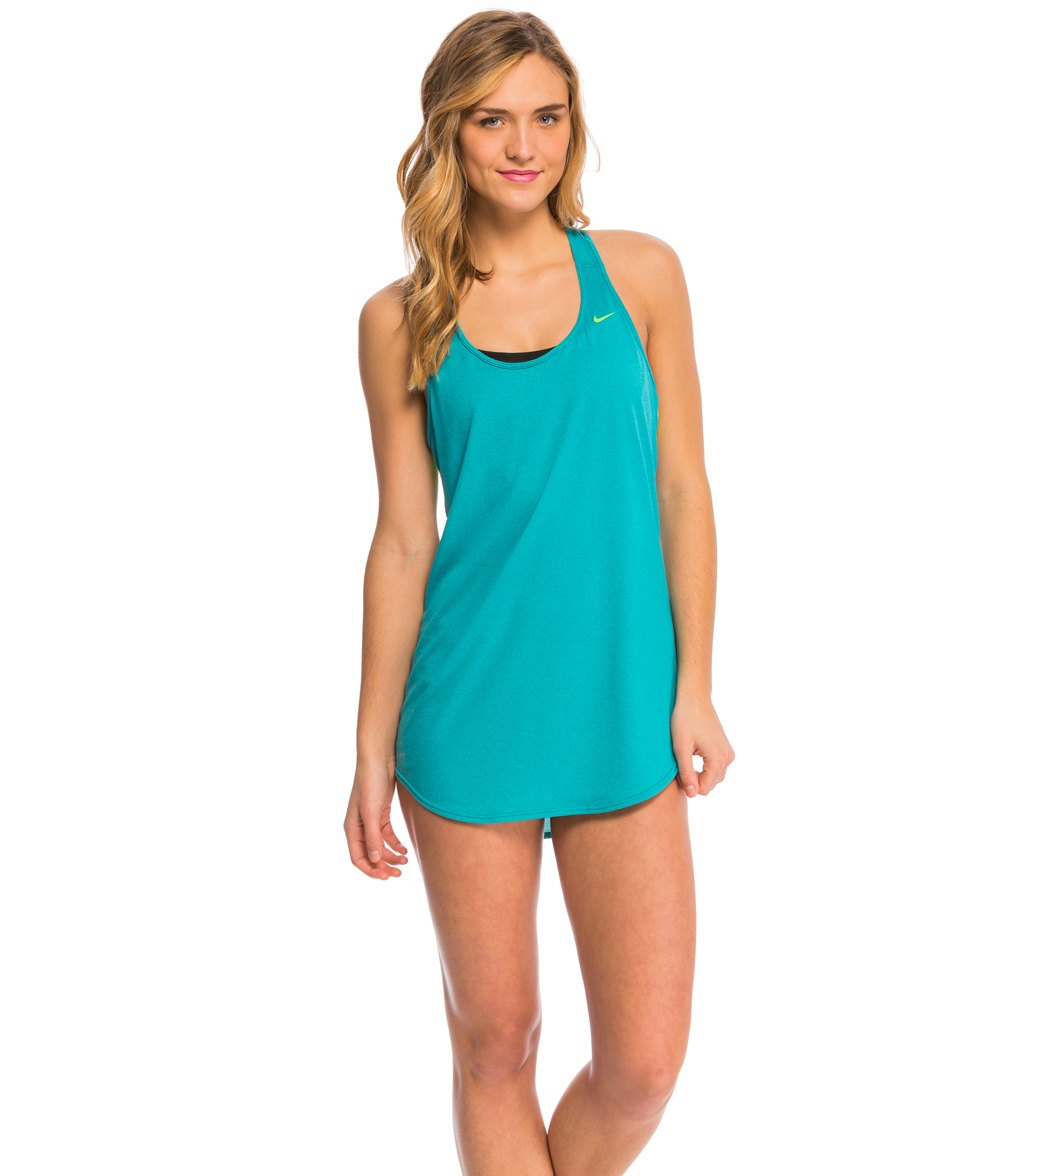 bc5955454d ... Nike Women's Cover-Up Dress. Play Video. MODEL MEASUREMENTS